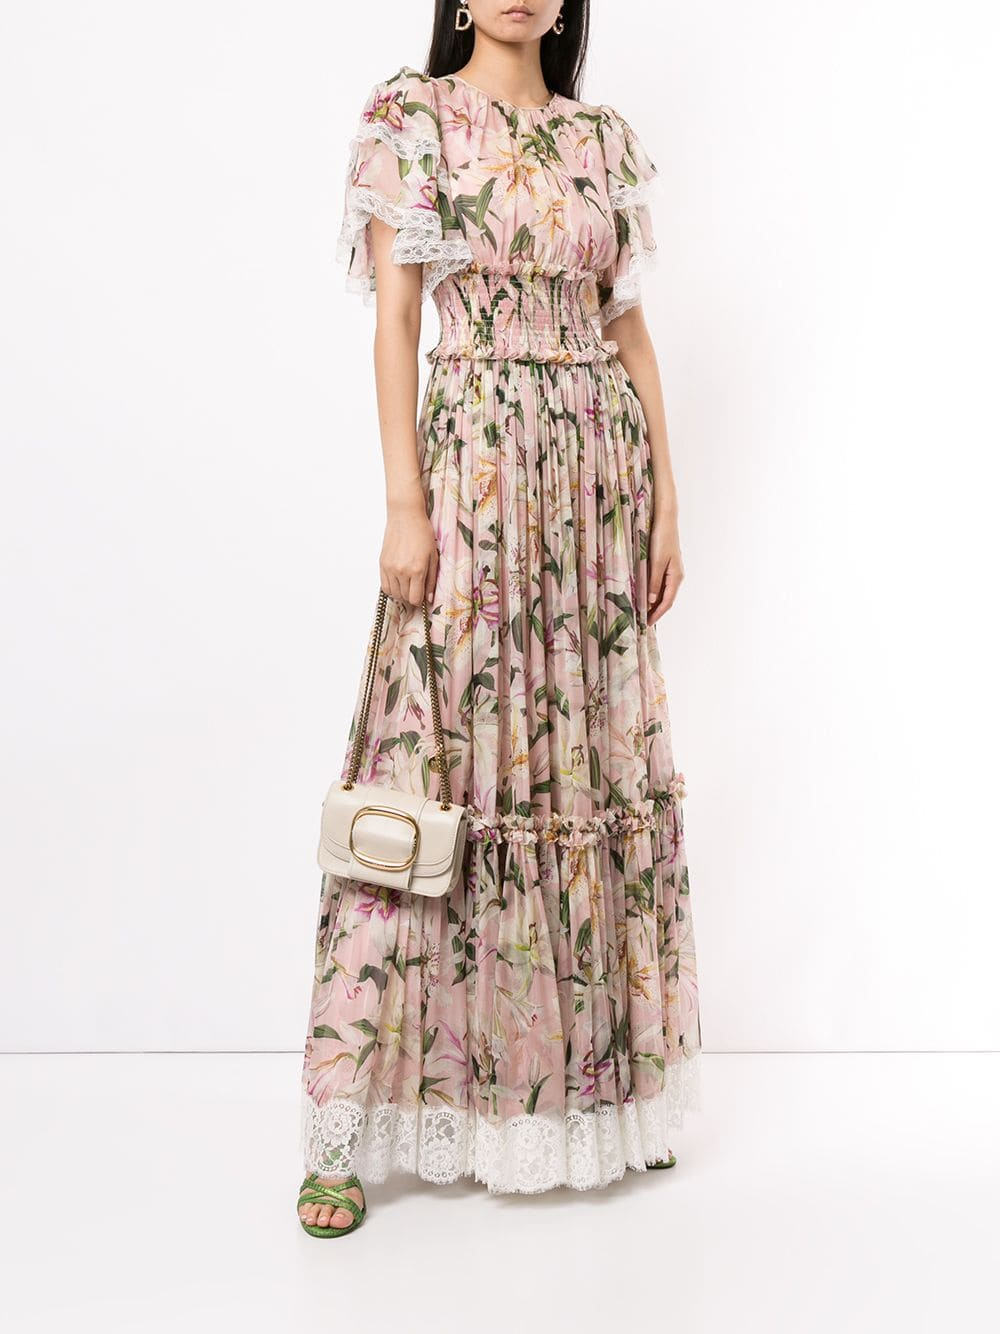 DOLCE & GABBANA Ruched Lilies Dress